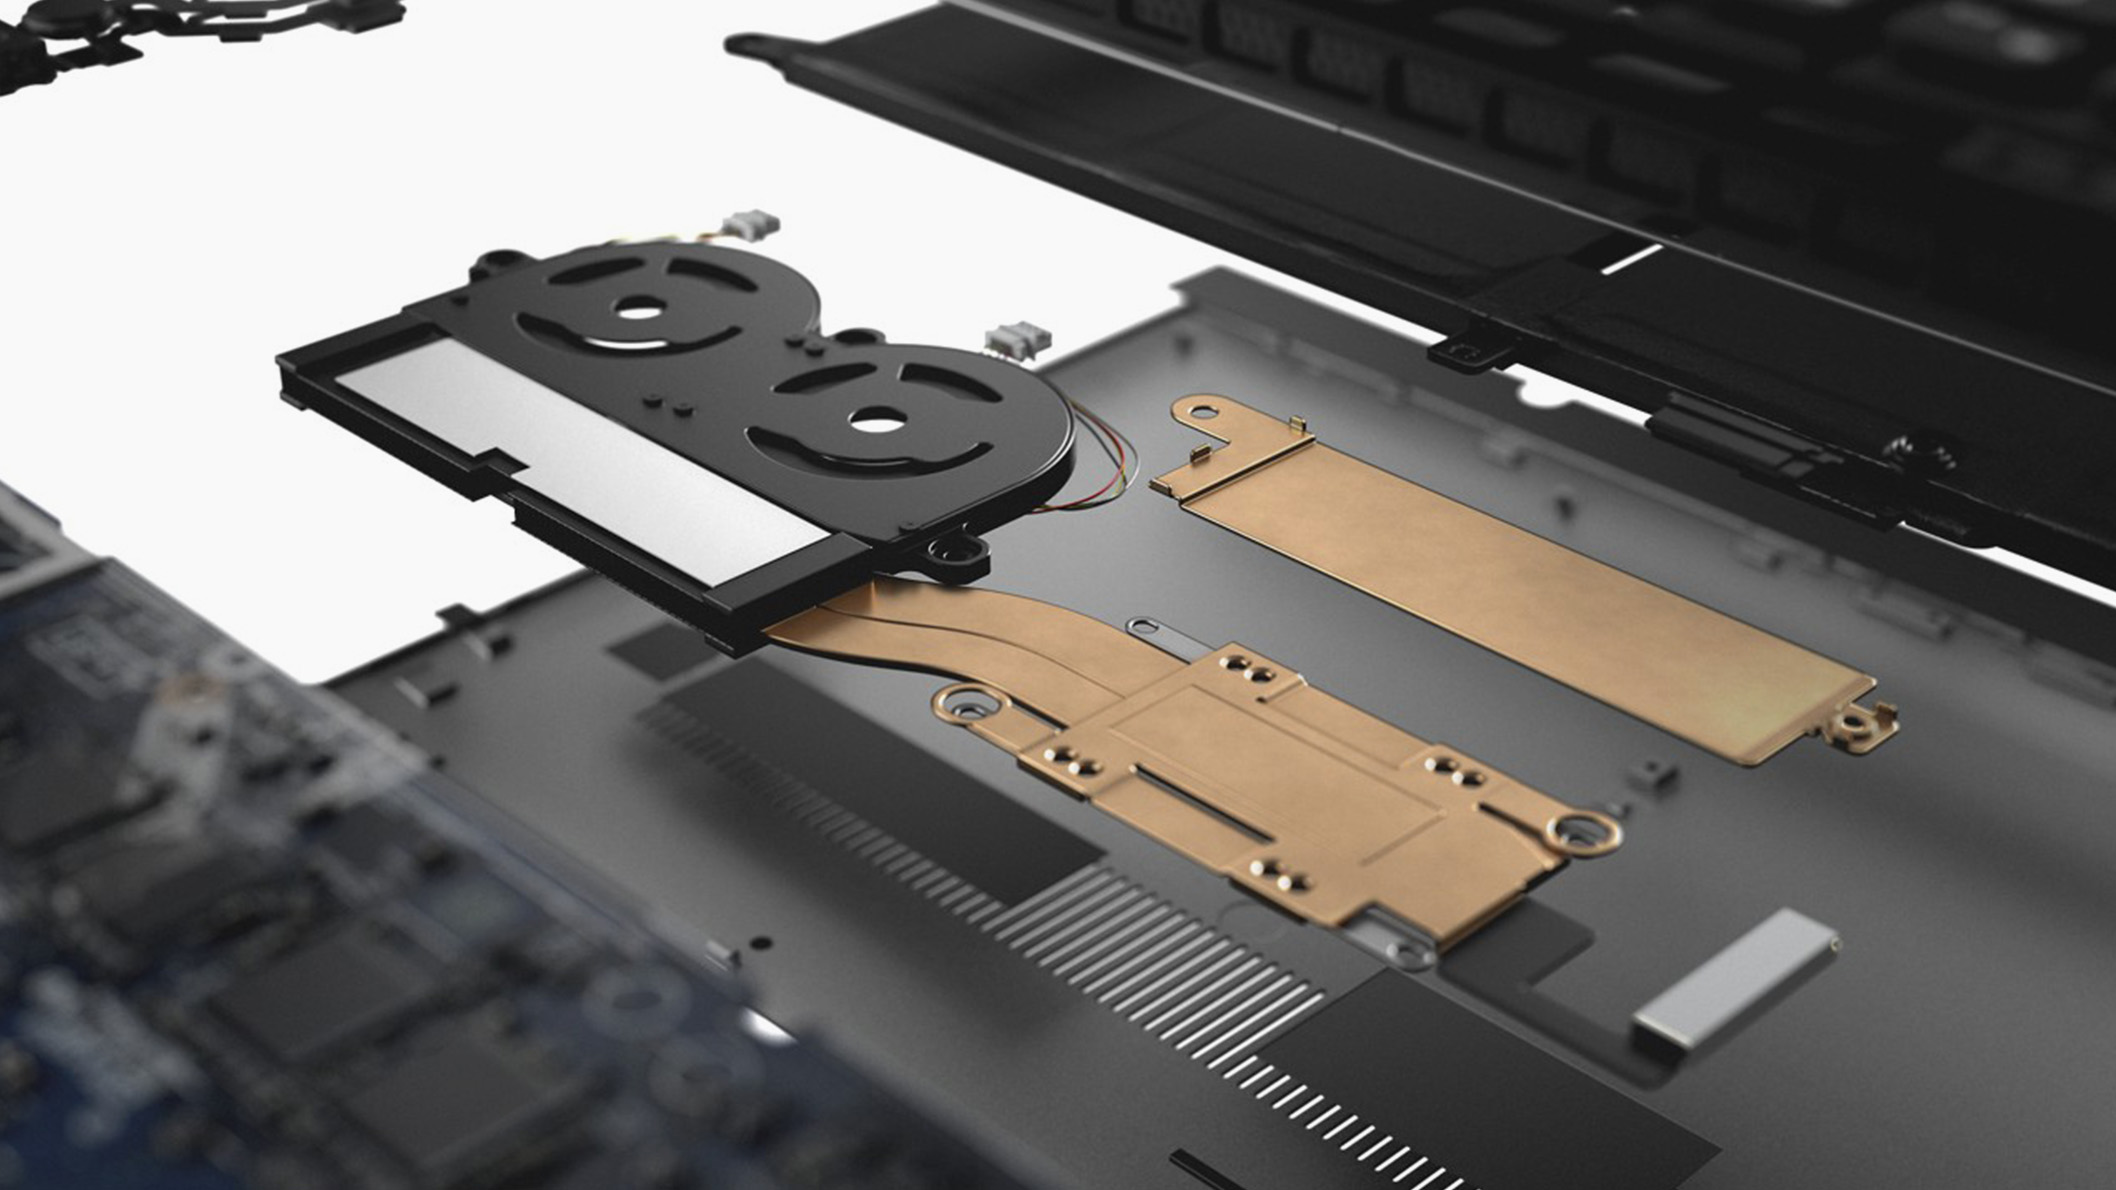 Internal components of the Dell XPS